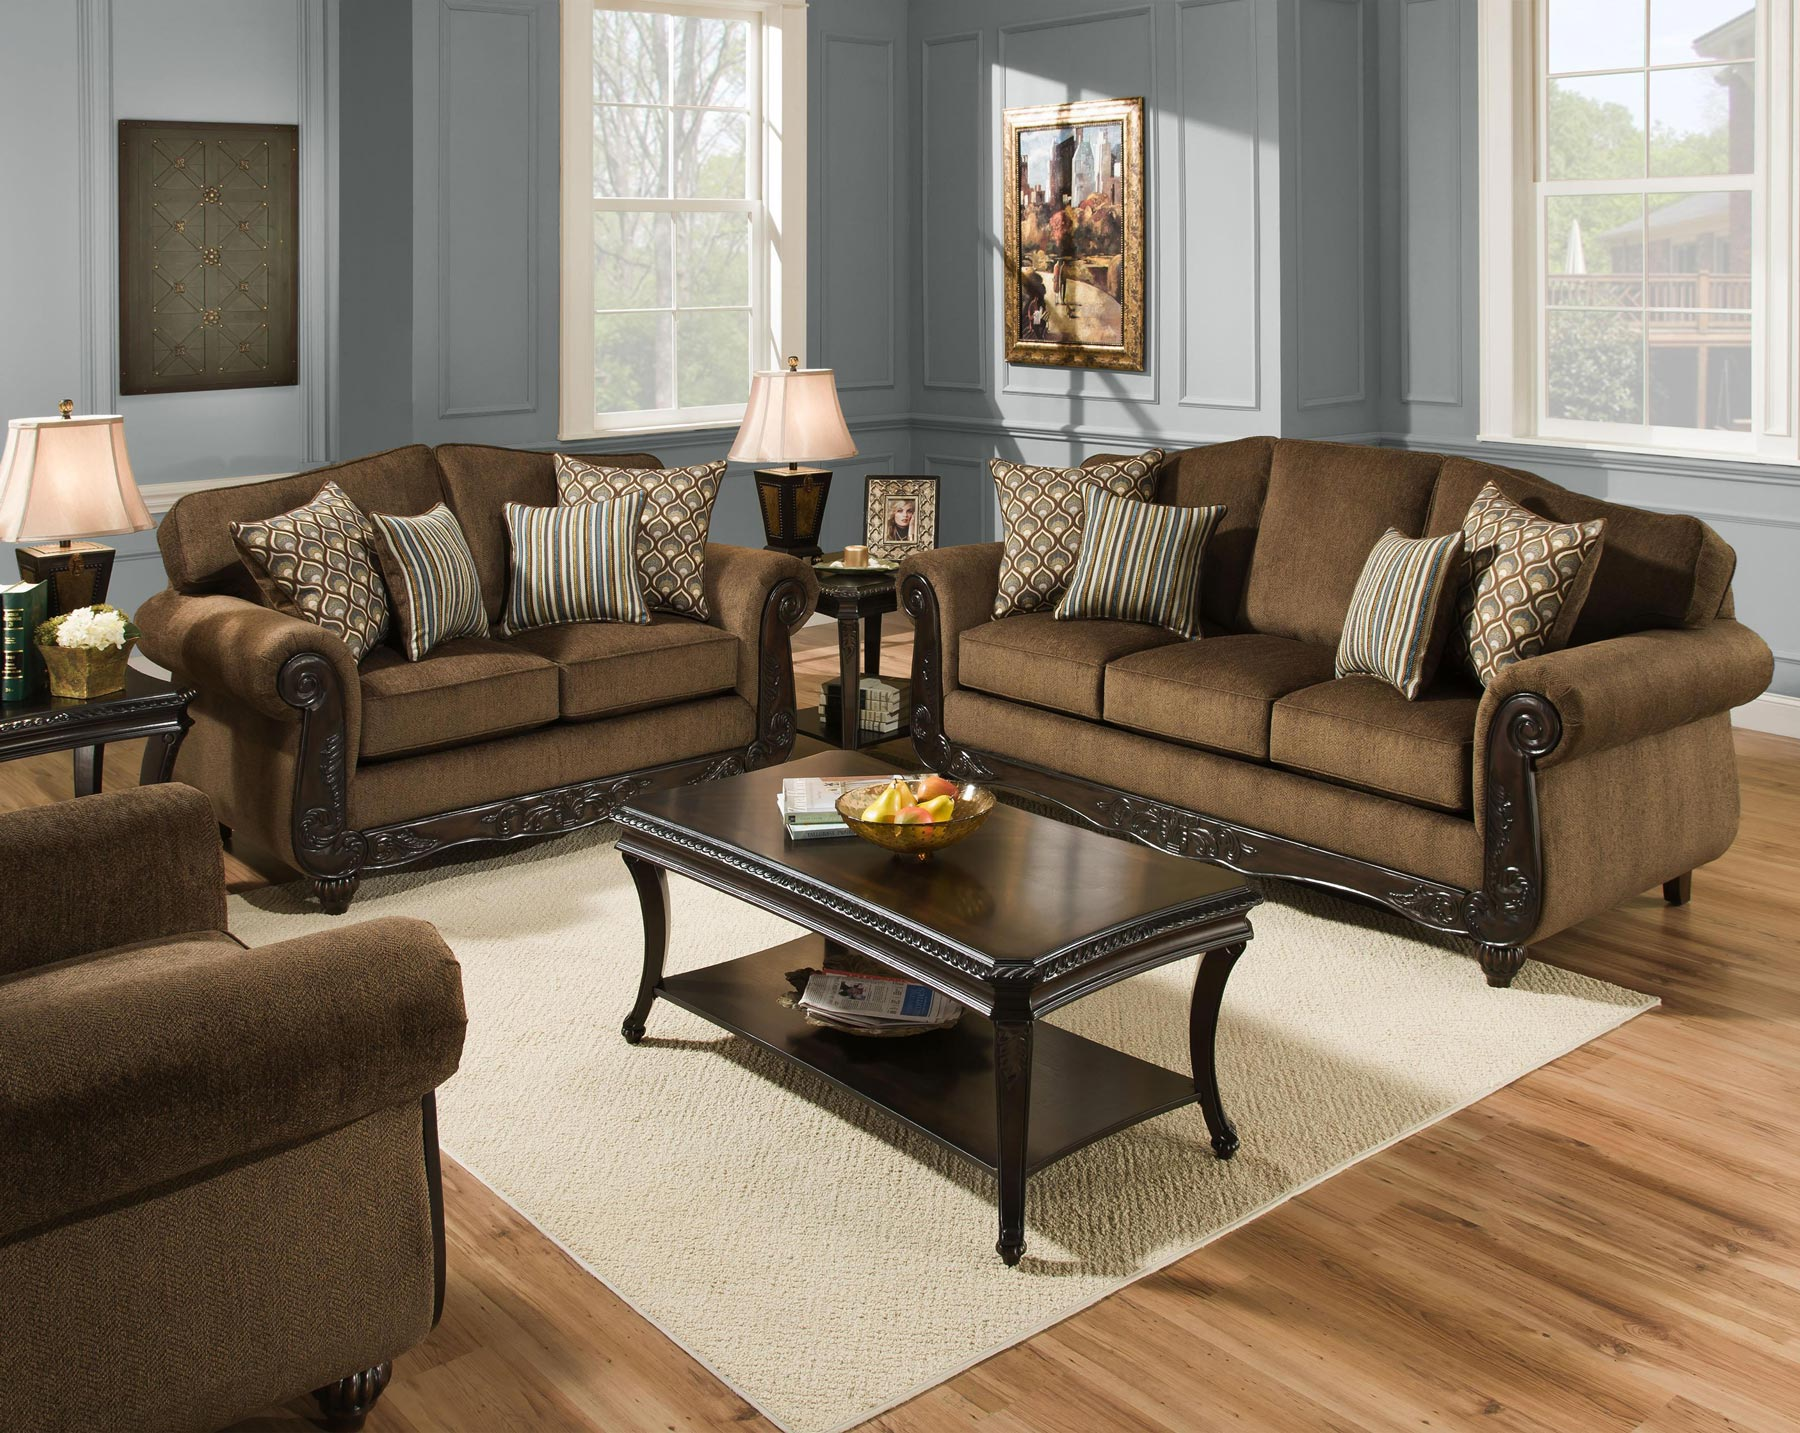 Bedford Bark 3 Piece Living Room Set Gonzalez Furniture